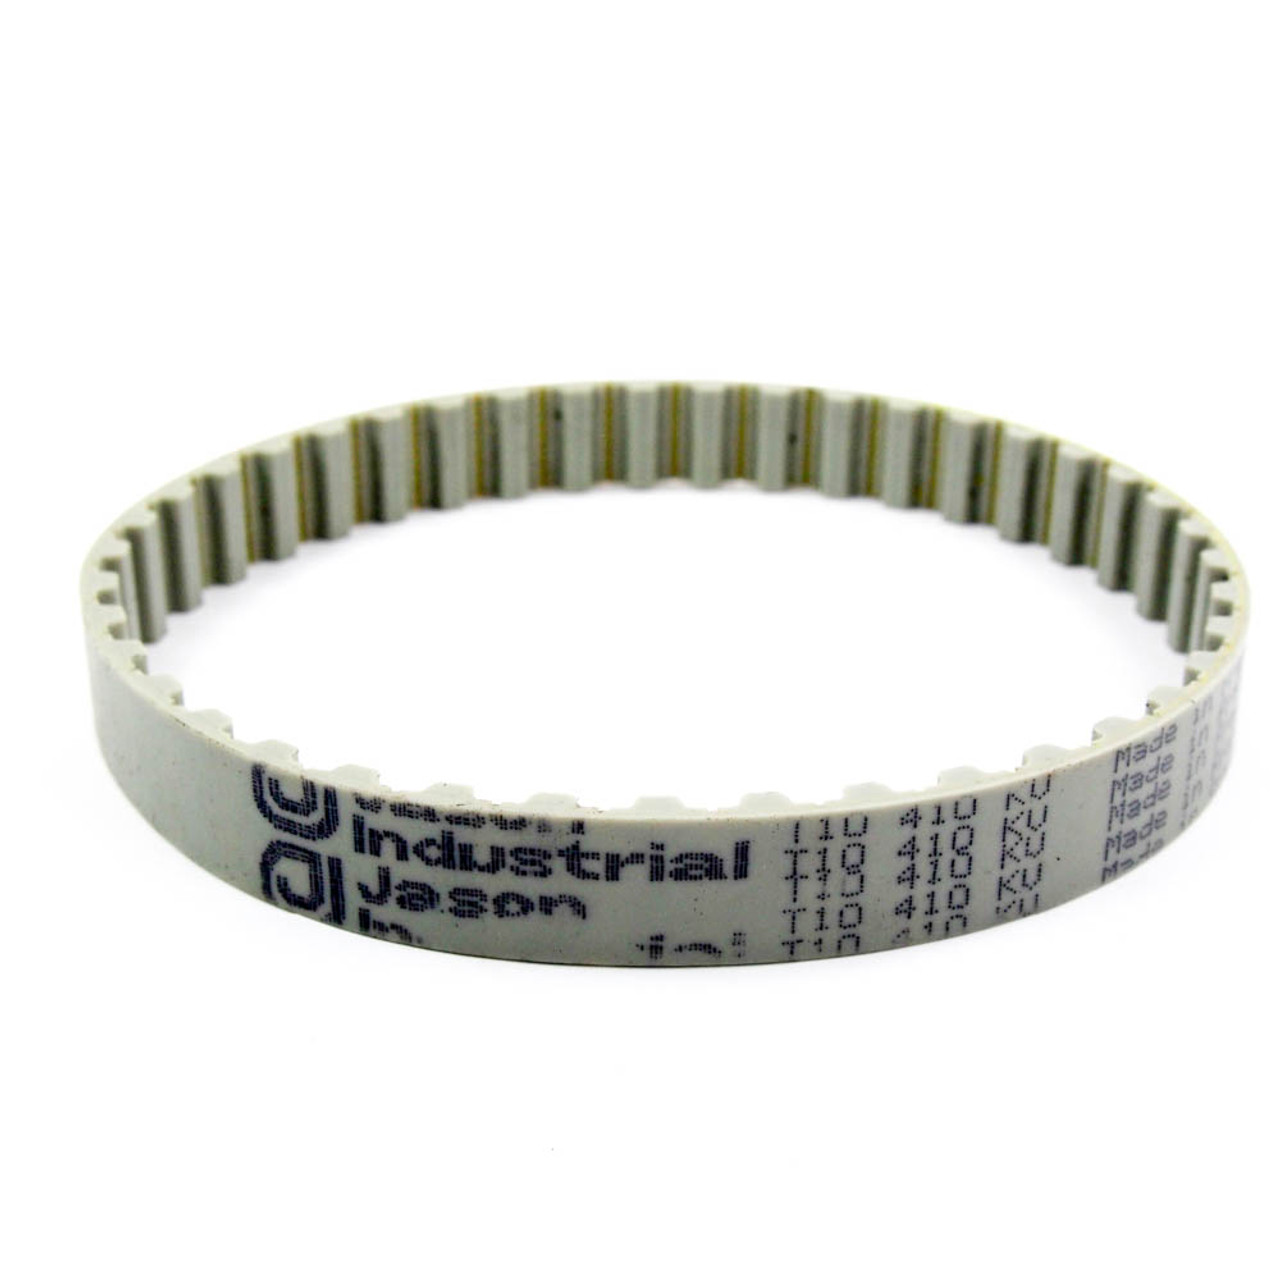 660 mm Pitch Length Polyurethane Jason Industrial 25T5//660 T-5 Metric Pitch Timing Belts 132 Teeth 25 mm Wide